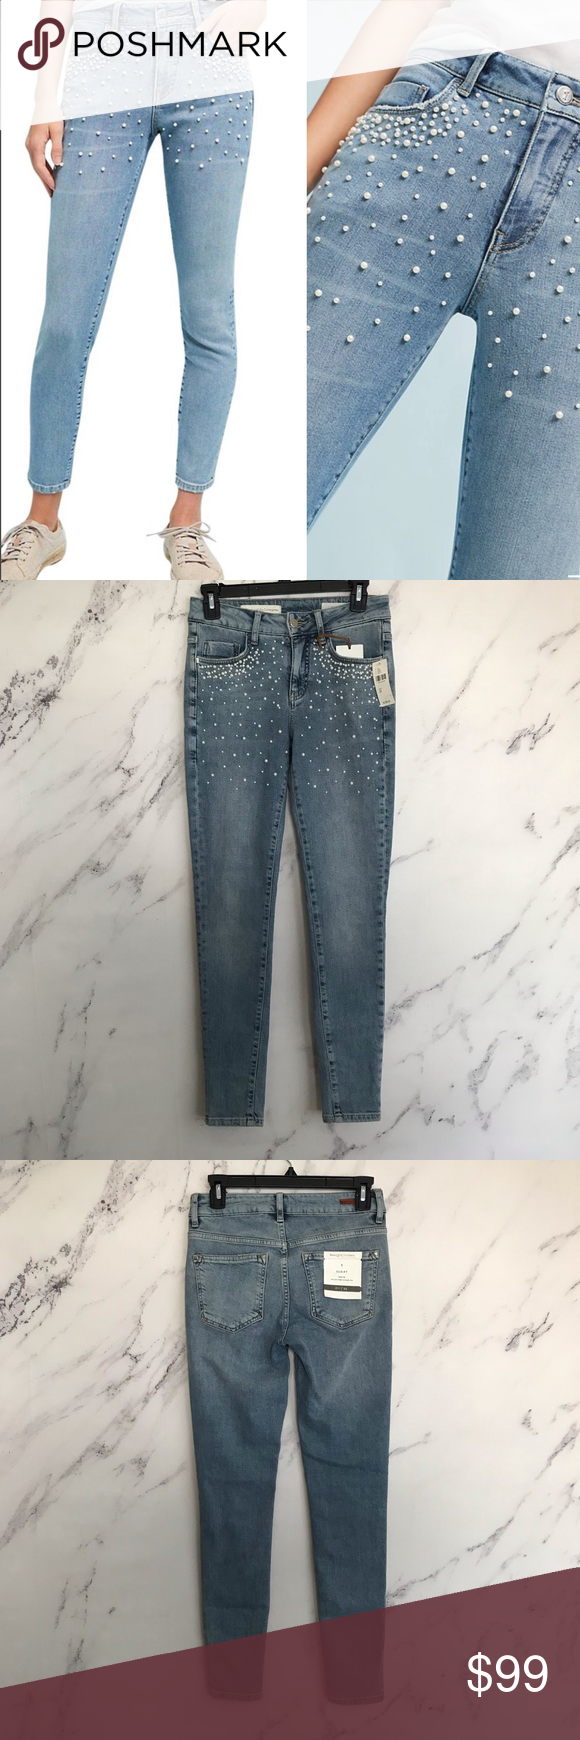 b4d727be5d7f7f Pilcro | 25 Script High Rise Pearl Skinny Jeans This pearl-embellished pair  in a